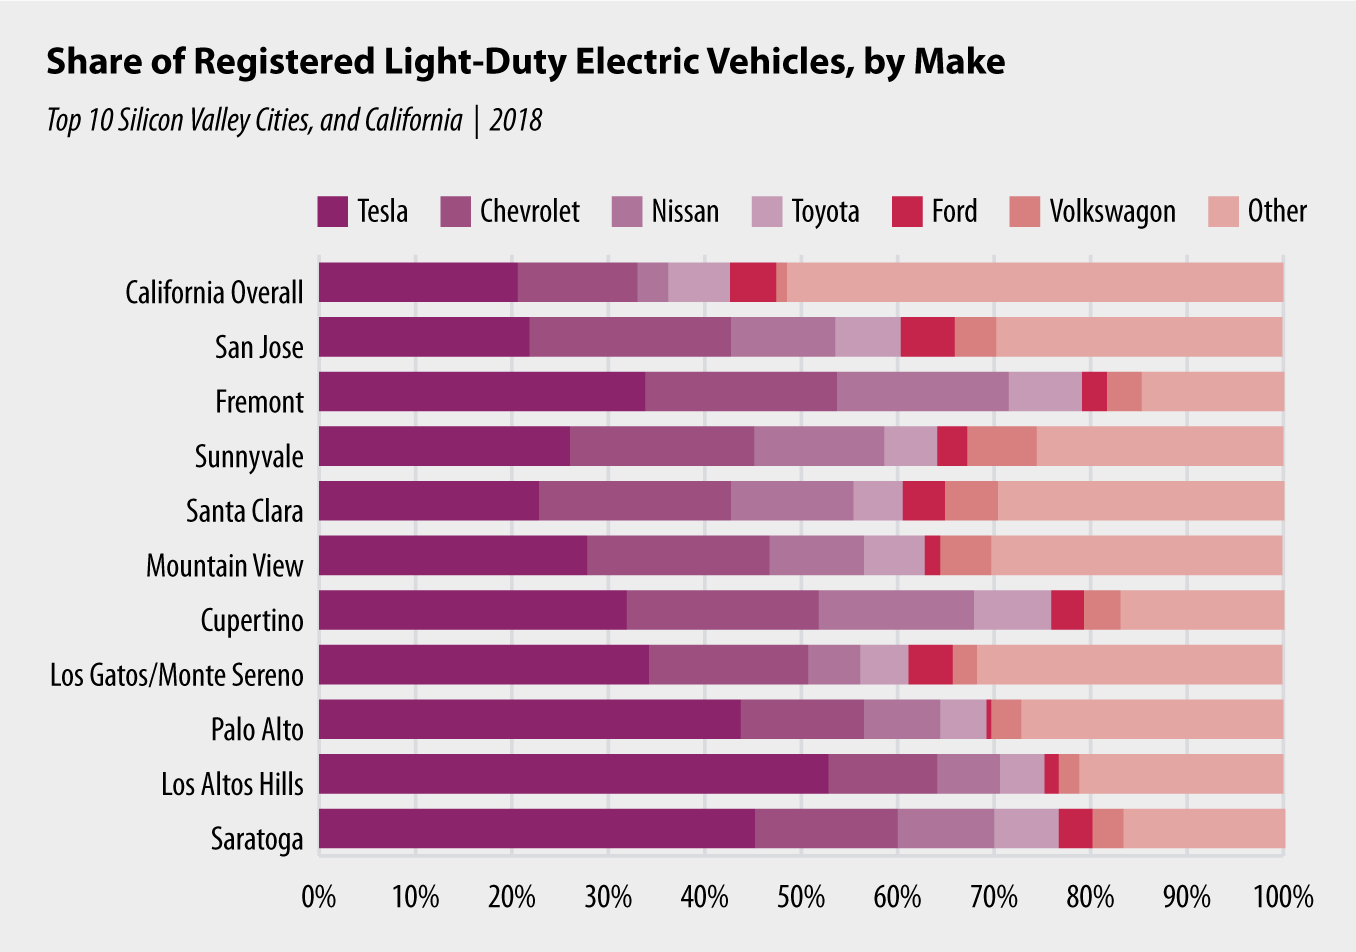 Chart 6: Share of Registered Light-Duty Electric Vehicles, by Make